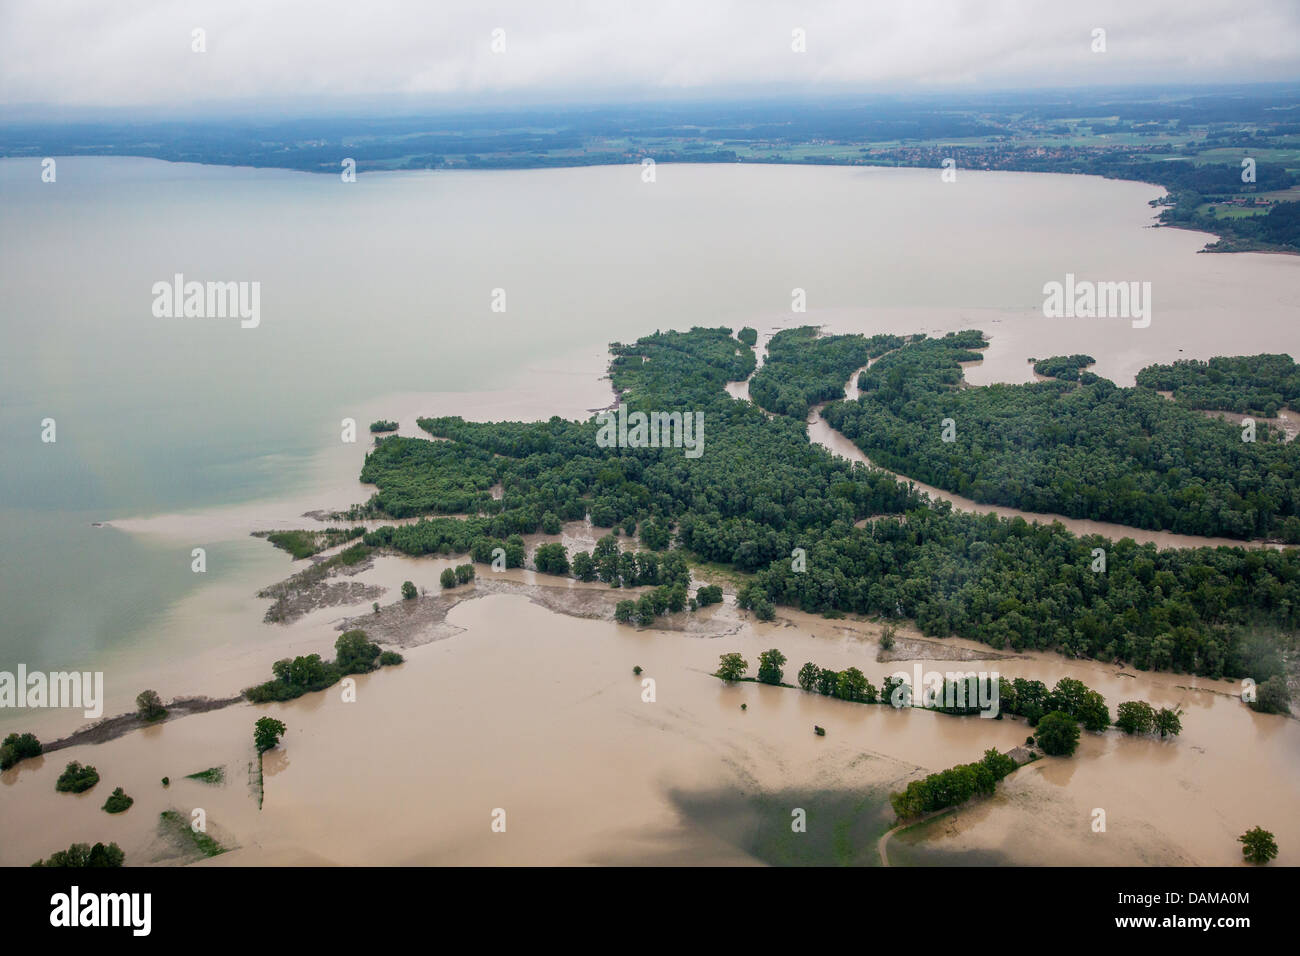 river delta of Achen, Hirschauer Bucht  at lake Chiemsee flooded in June 2013, Germany, Bavaria, Lake Chiemsee - Stock Image